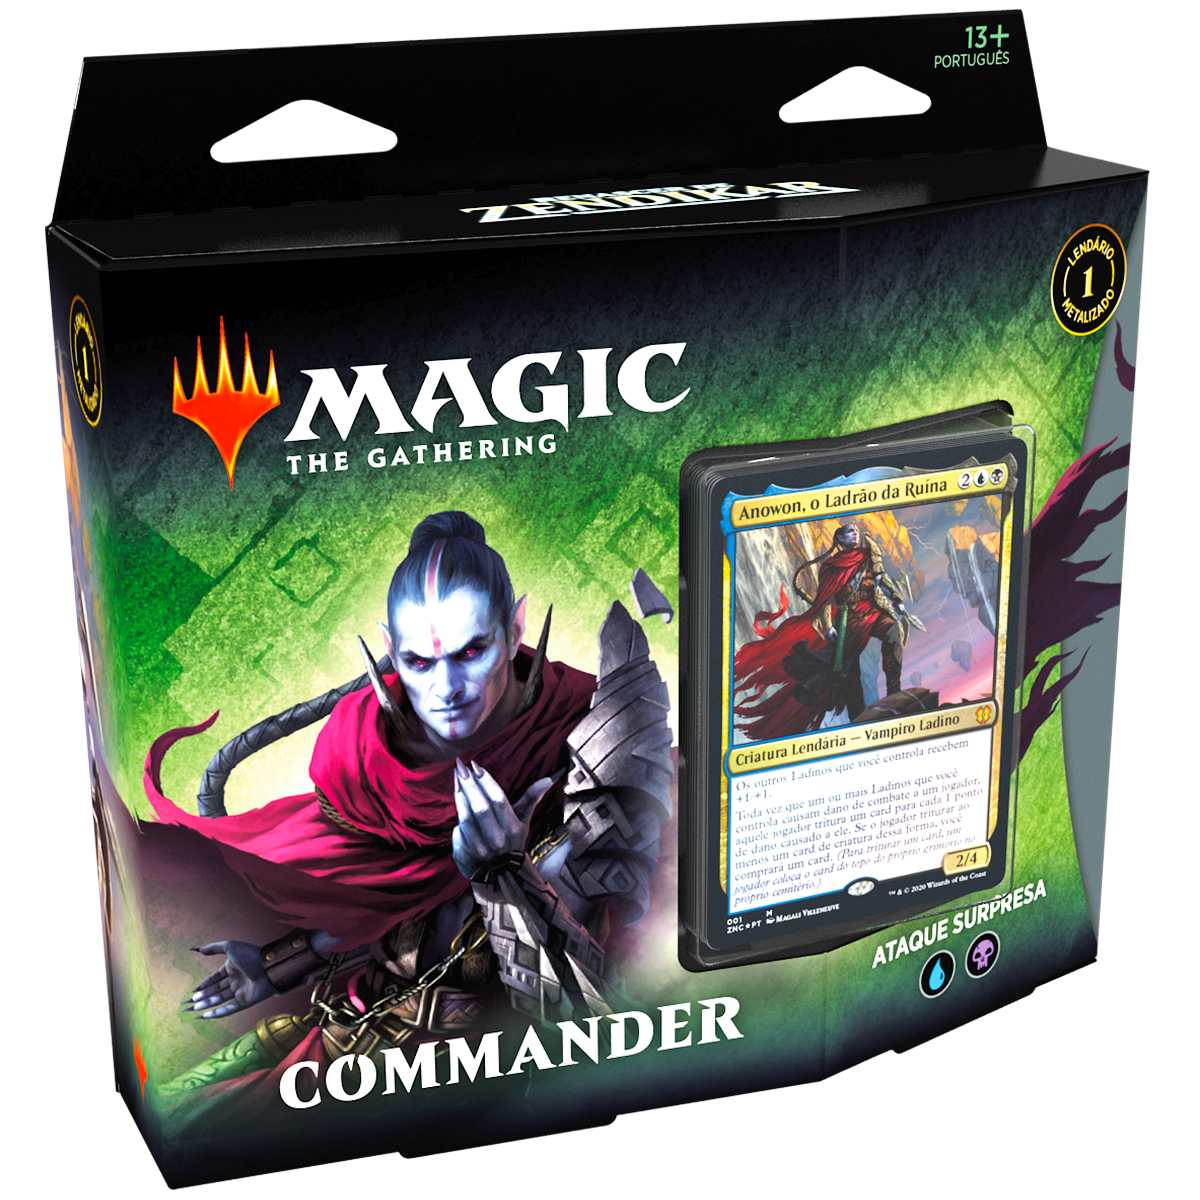 Magic Deck Commander Renascer Zendikar Ataque Surpresa Anowon